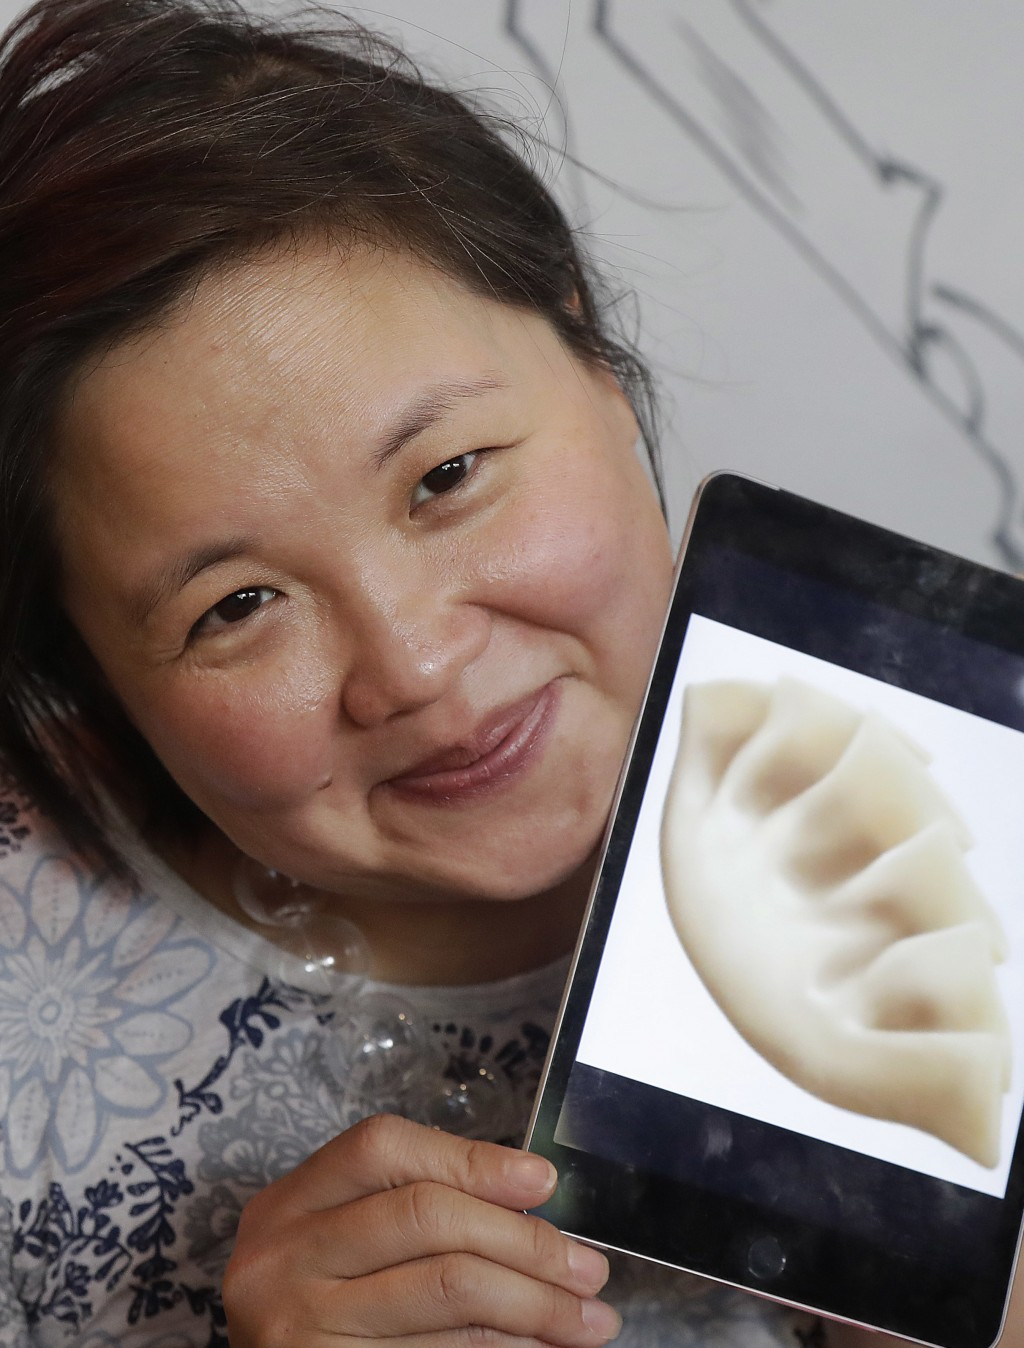 In this Wednesday, Dec. 27, 2017, photo, author Jennifer 8. Lee holds an image of a dumpling emoji while posing for photos before eating lunch at Dump...